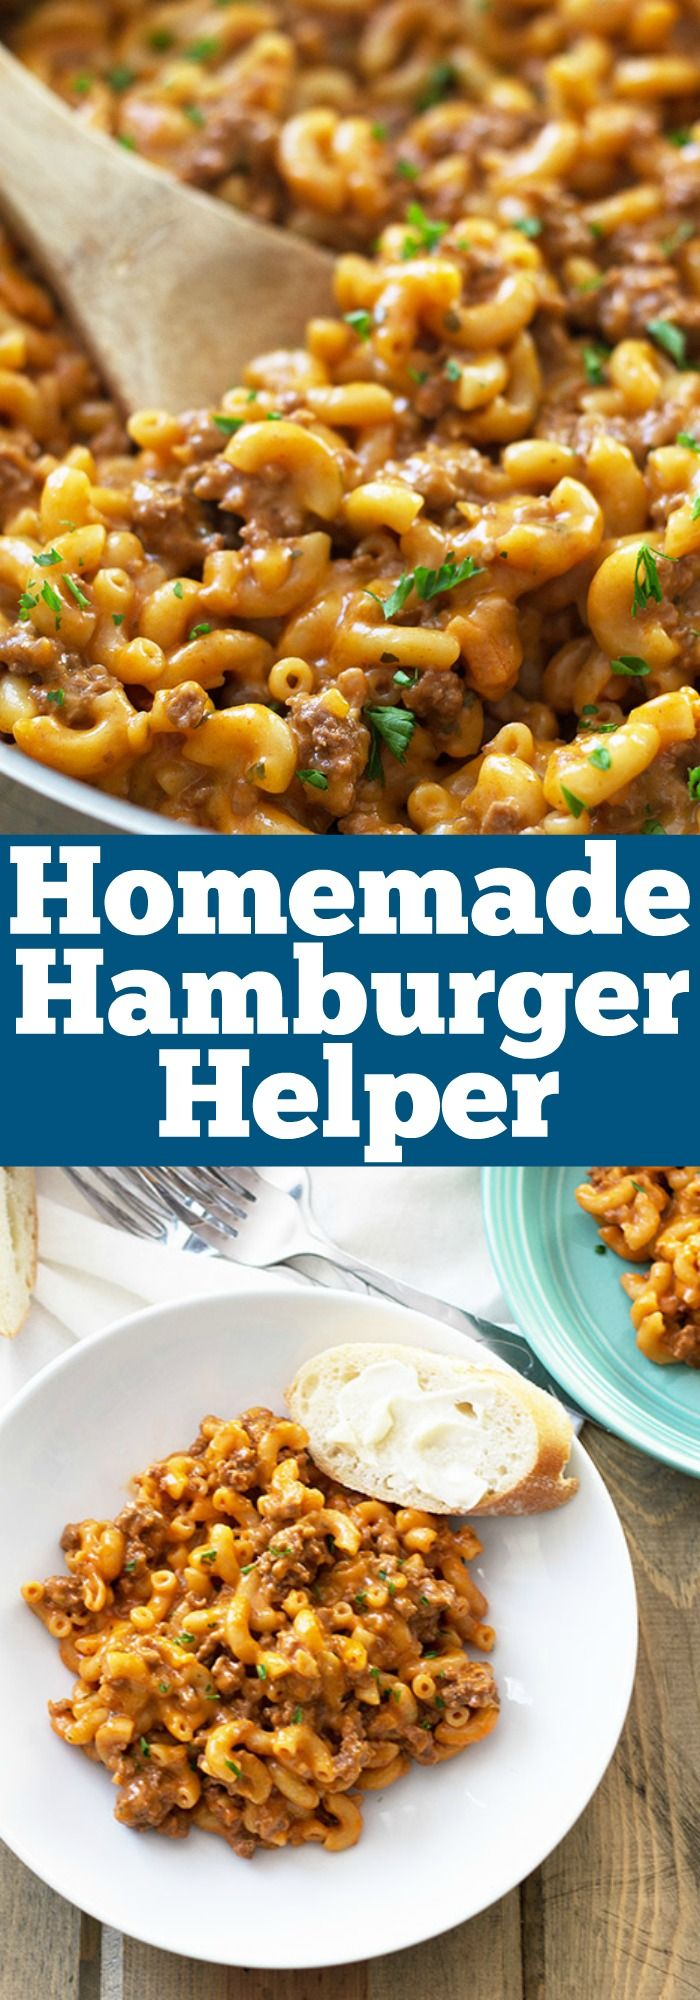 Homemade Hamburger Helper -just as quick and easy as the boxed stuff, but tastes way better!